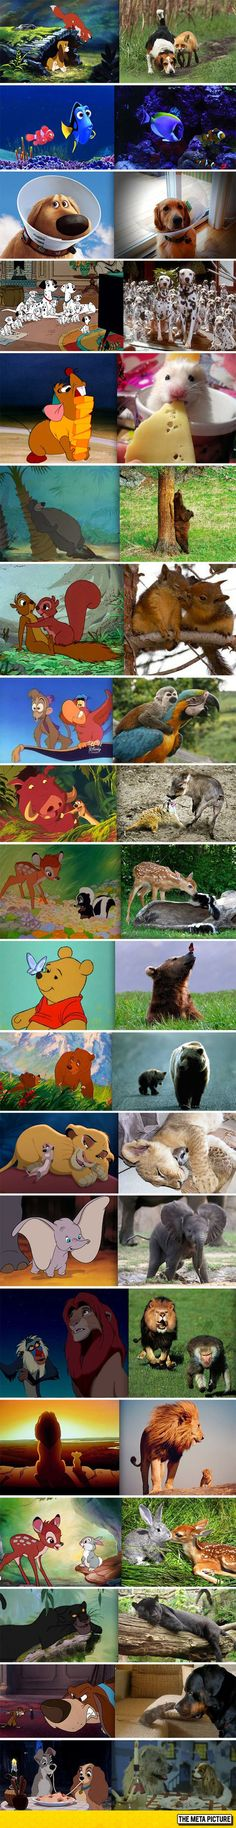 Classic Disney Movies In Real Life<<I just realized how unrealistic Doug from UP is.